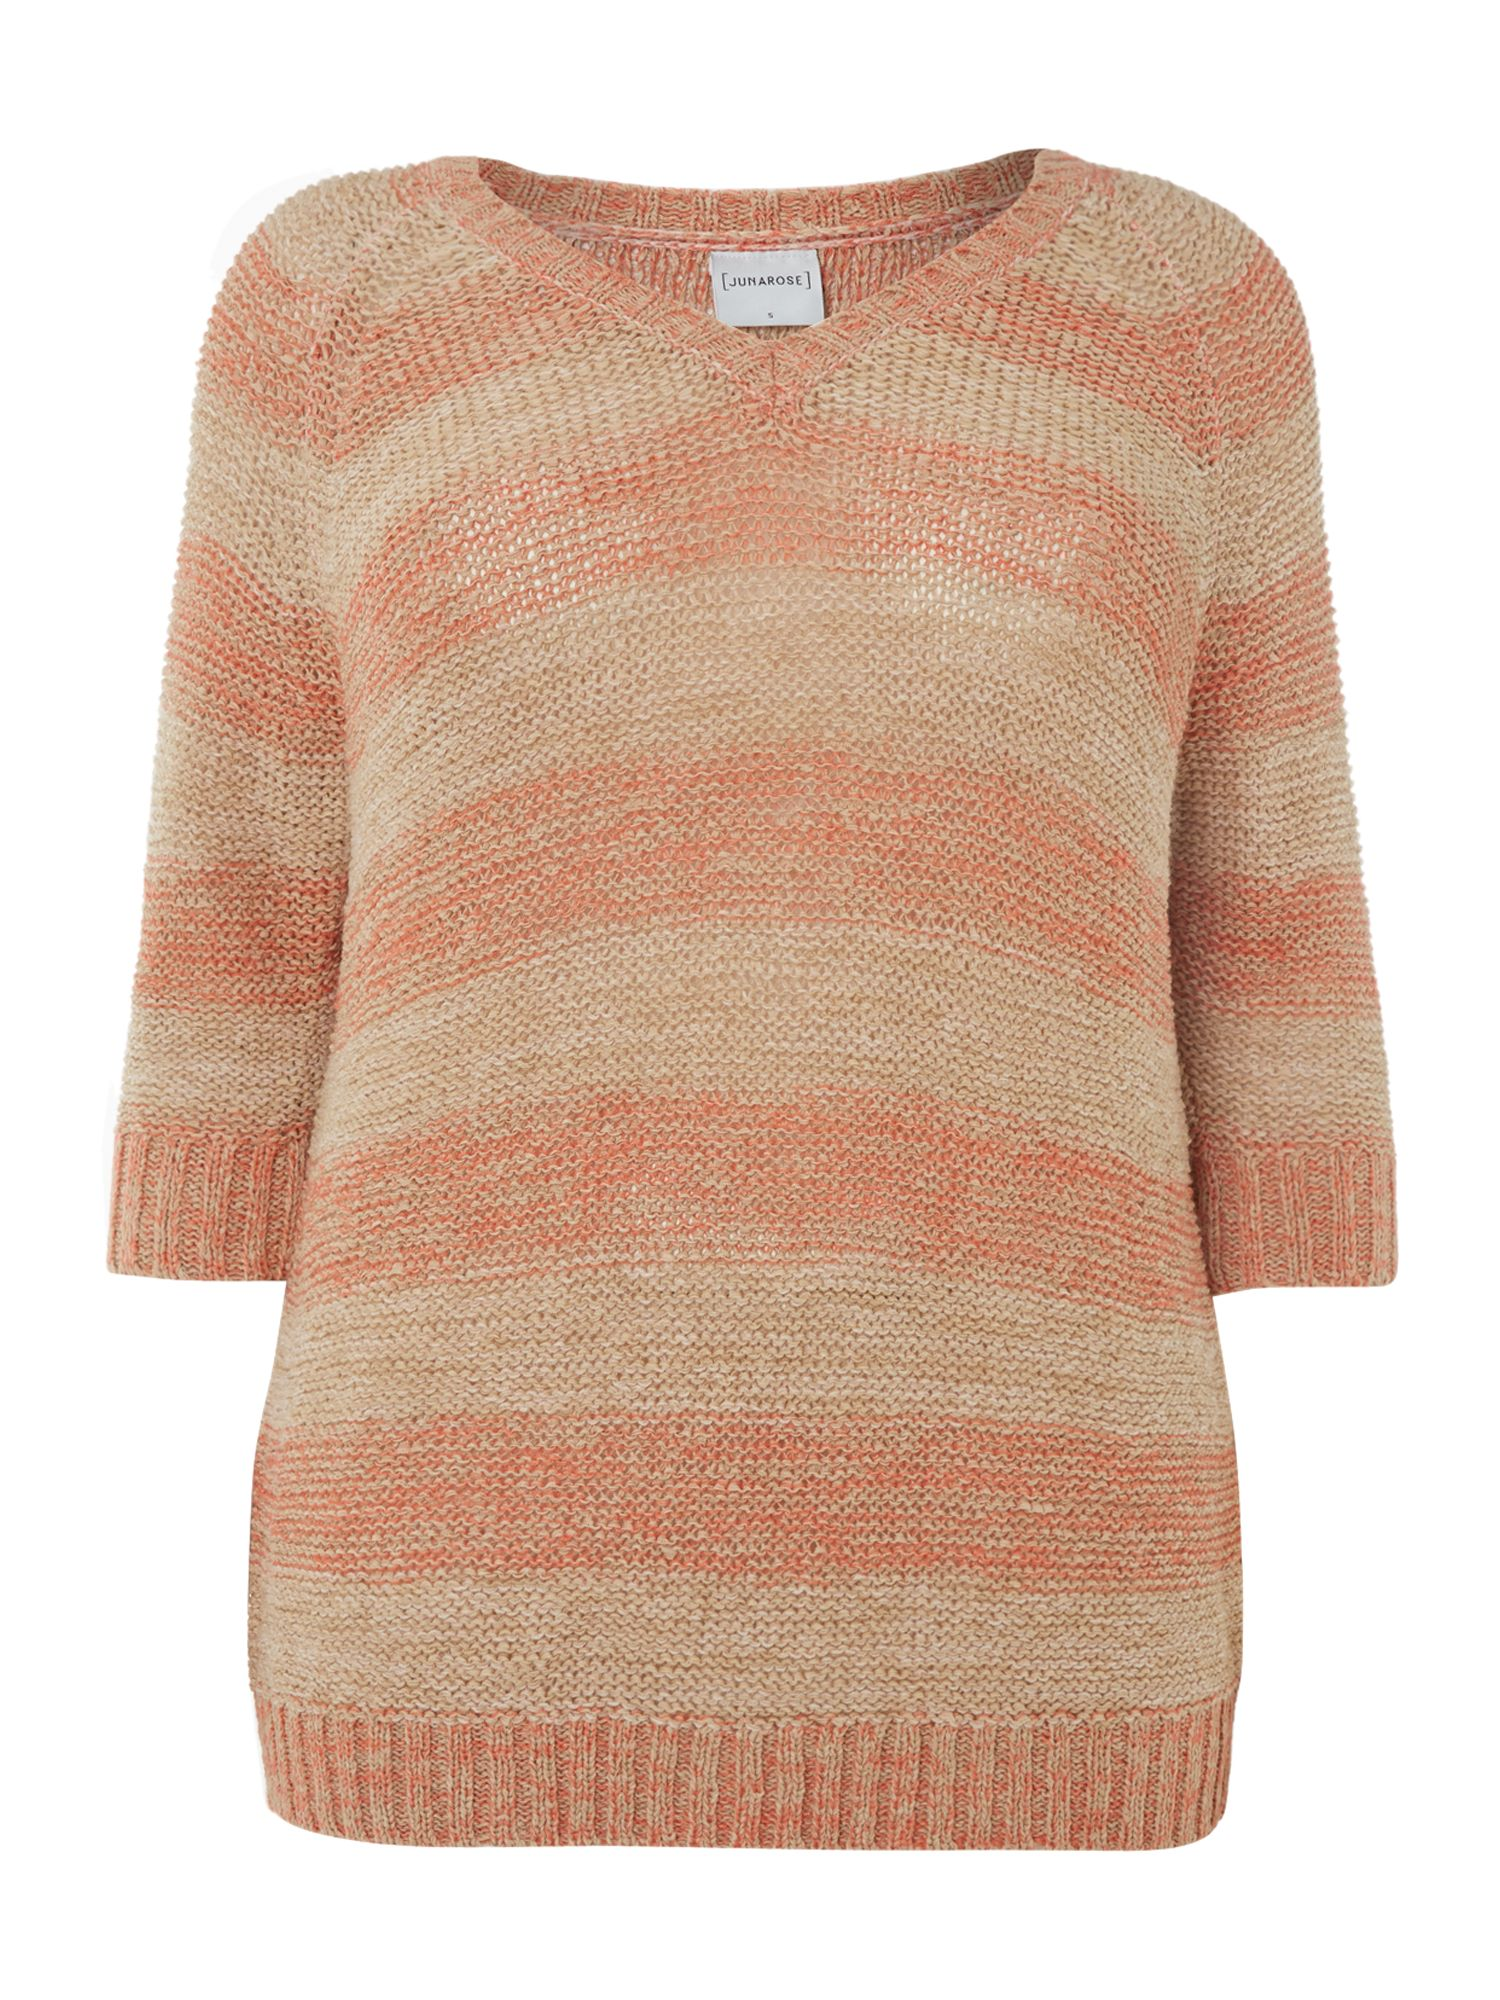 Knit 3/4 sleeve jumper